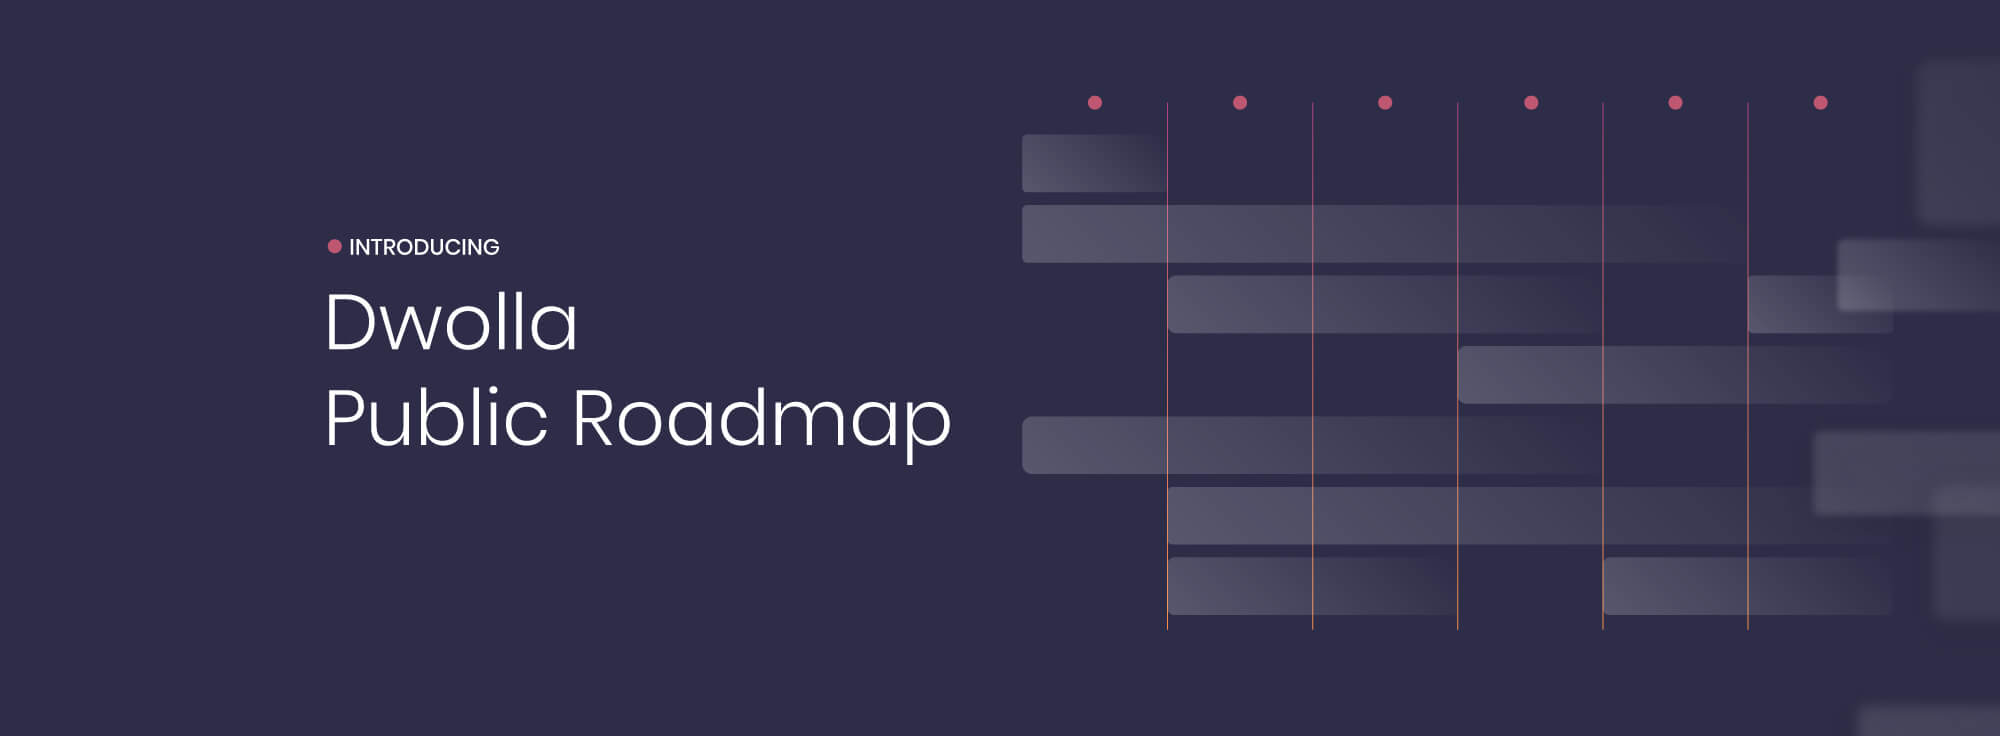 dwolla public roadmap featured image